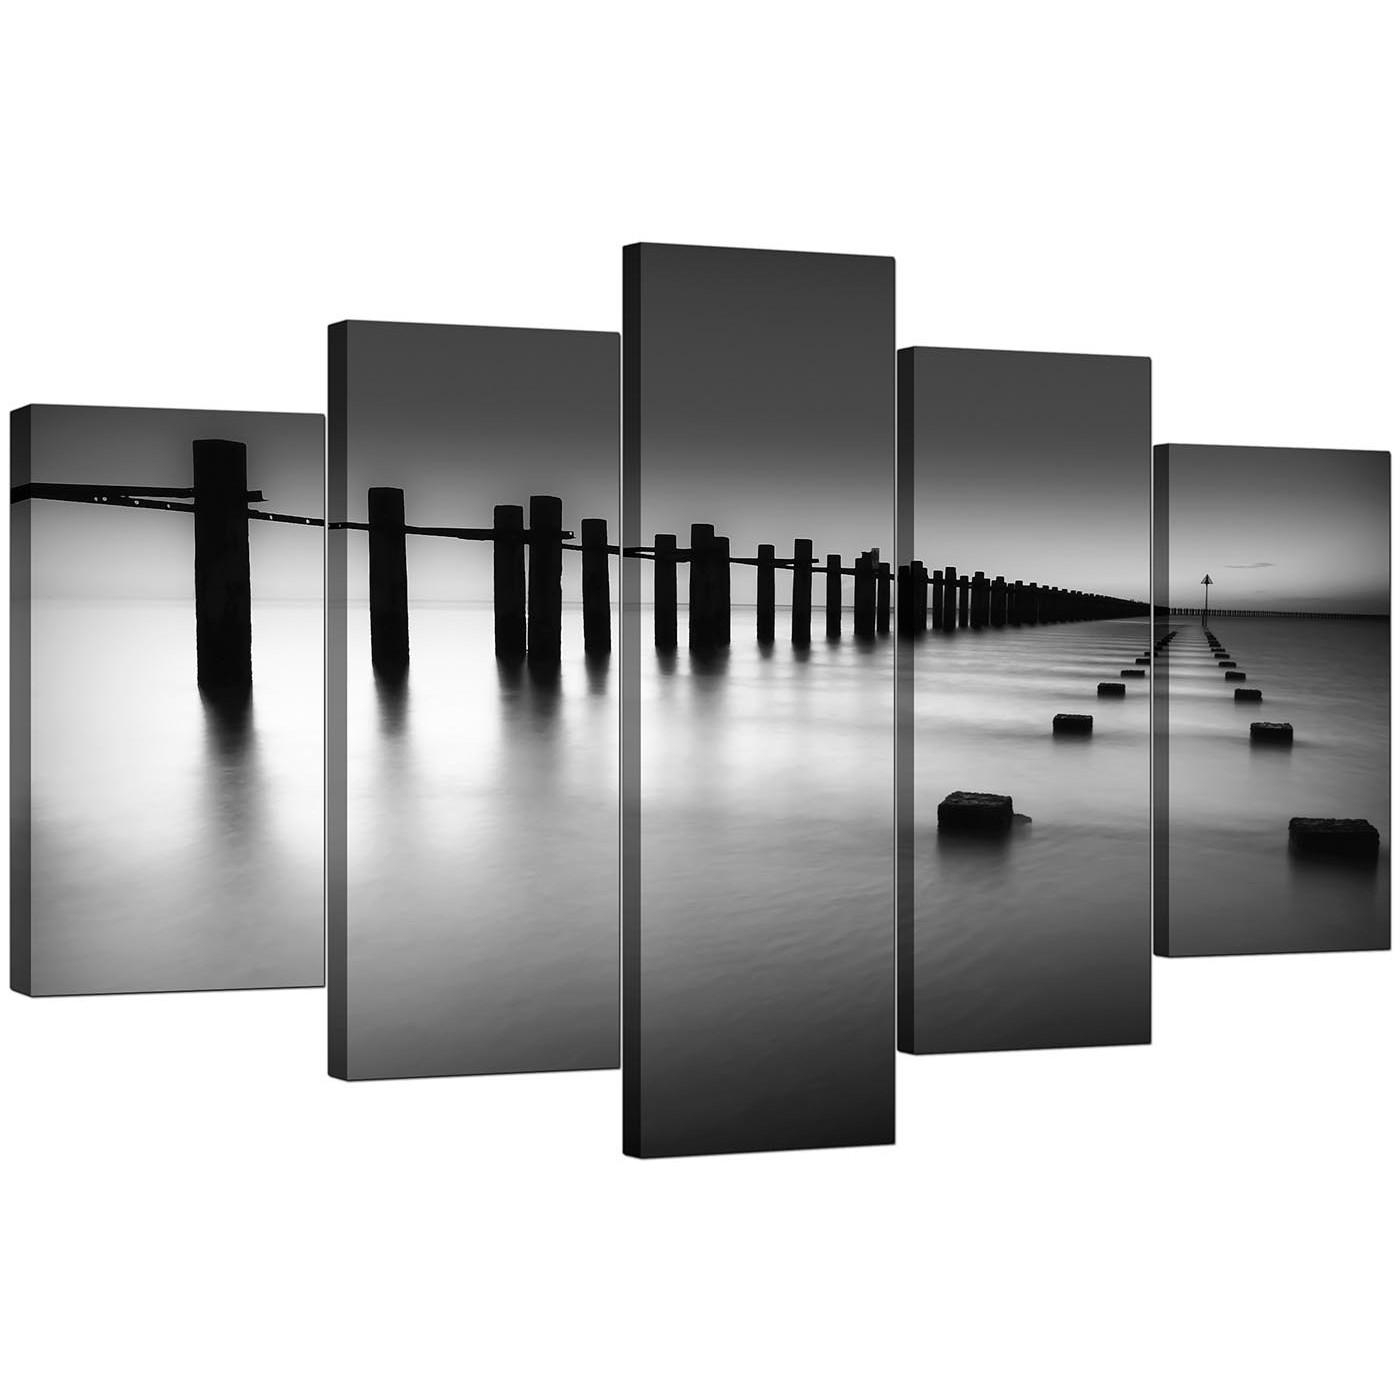 Extra Large Sea Canvas Prints 5 Piece In Black & White In Large Black And White Wall Art (Image 9 of 20)